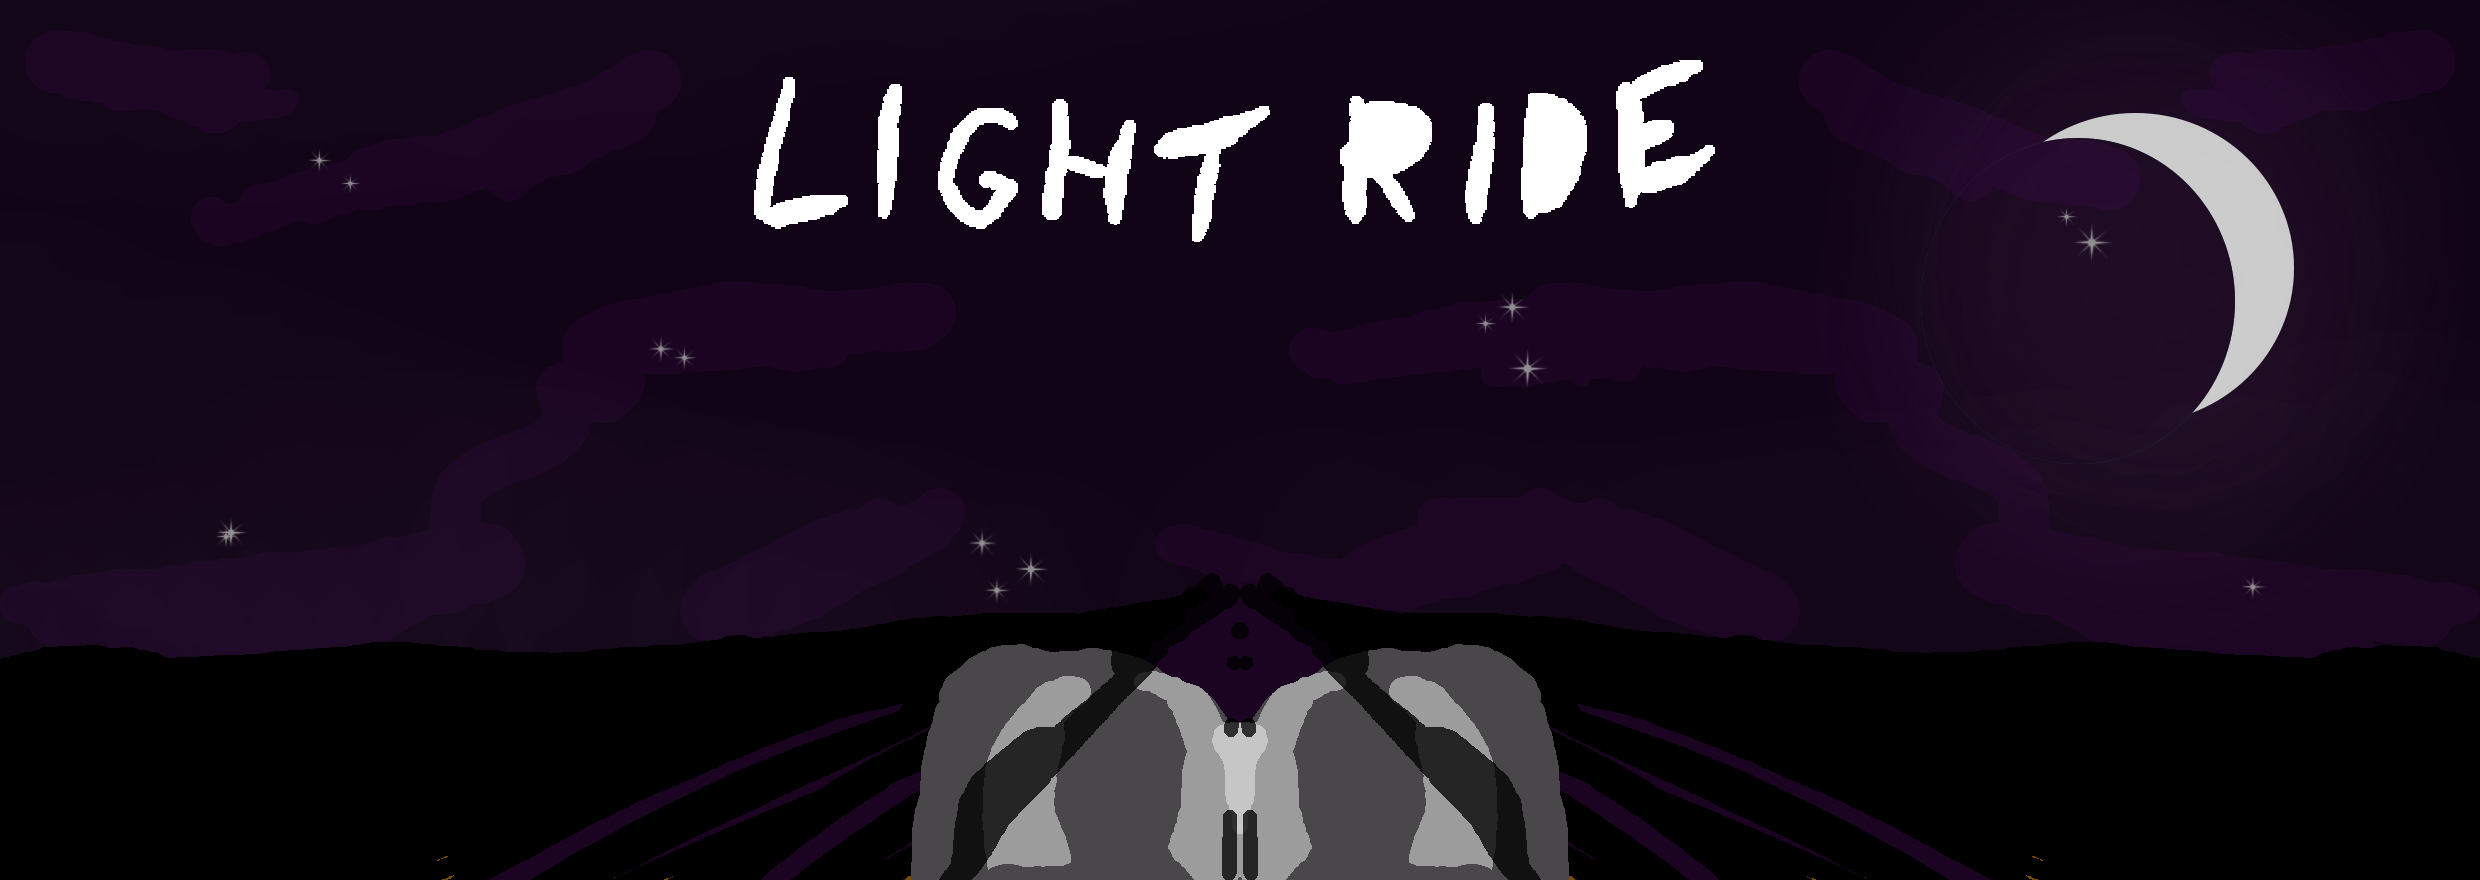 Light Ride